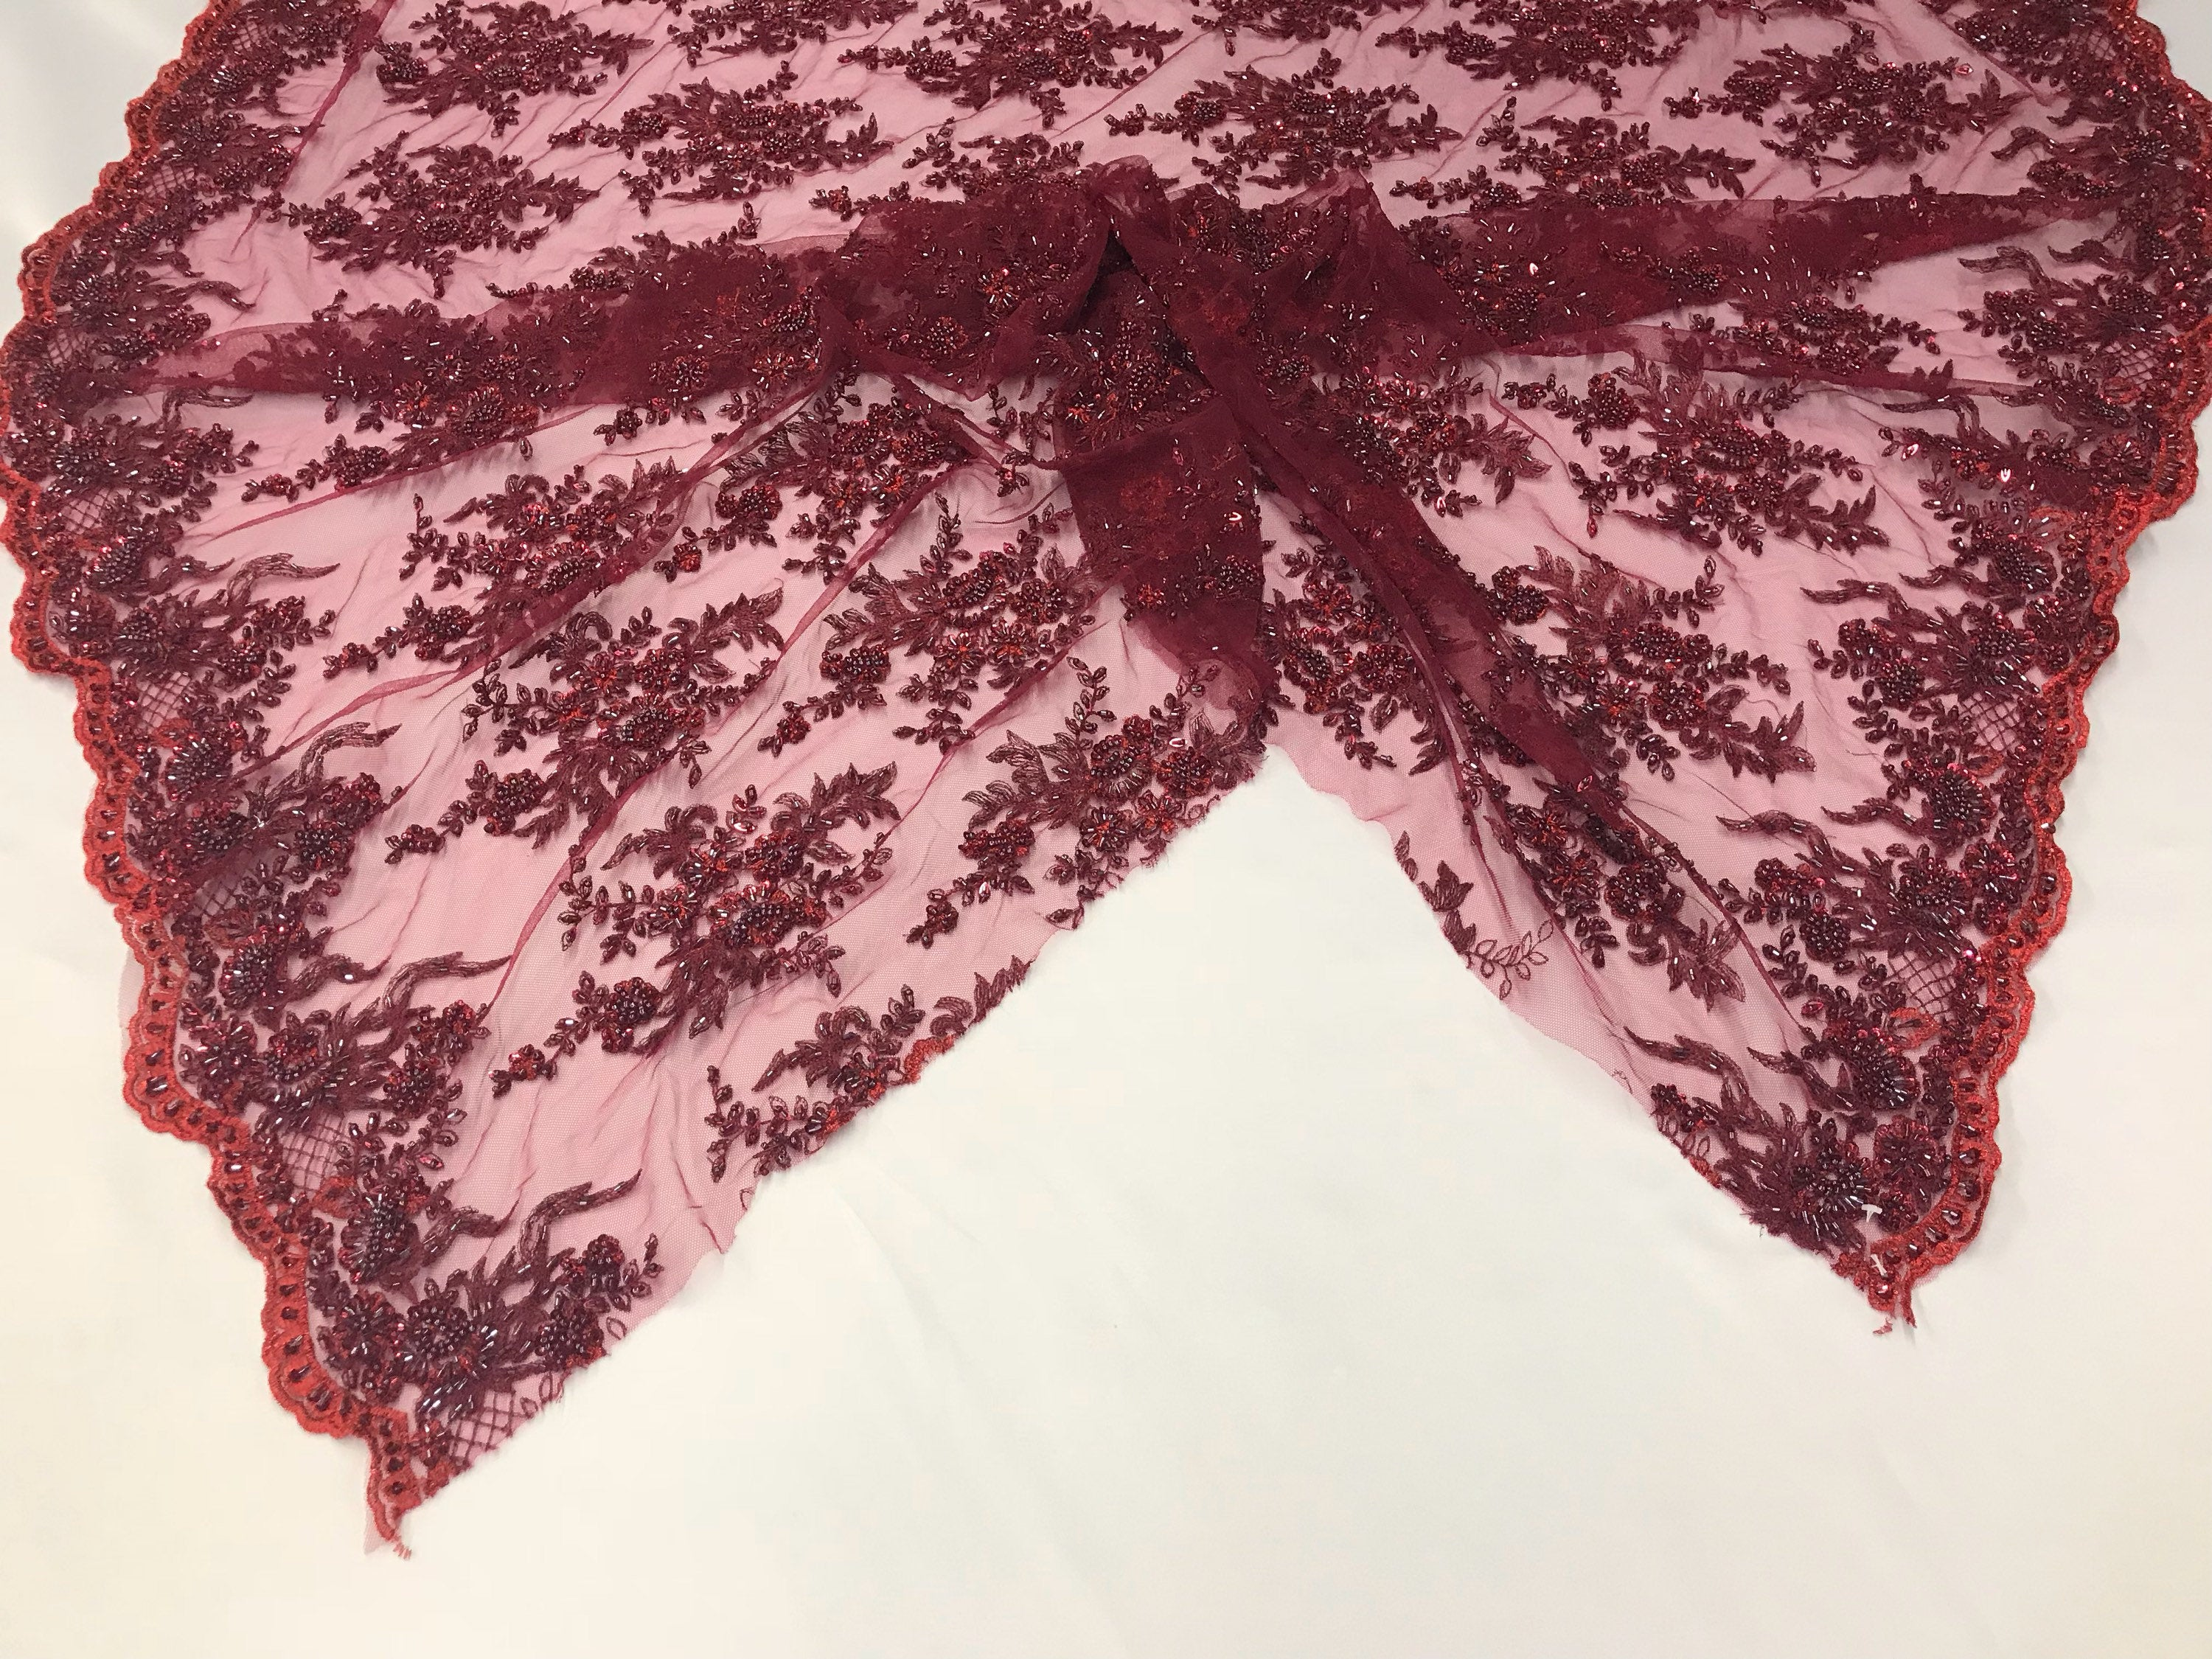 Beaded Fabric - Embroidered Lace Burgundy Hand Embroidered With Precious Stones Sequins Bridal Flower Mesh Dress Wedding By The Yard - KINGDOM OF FABRICS